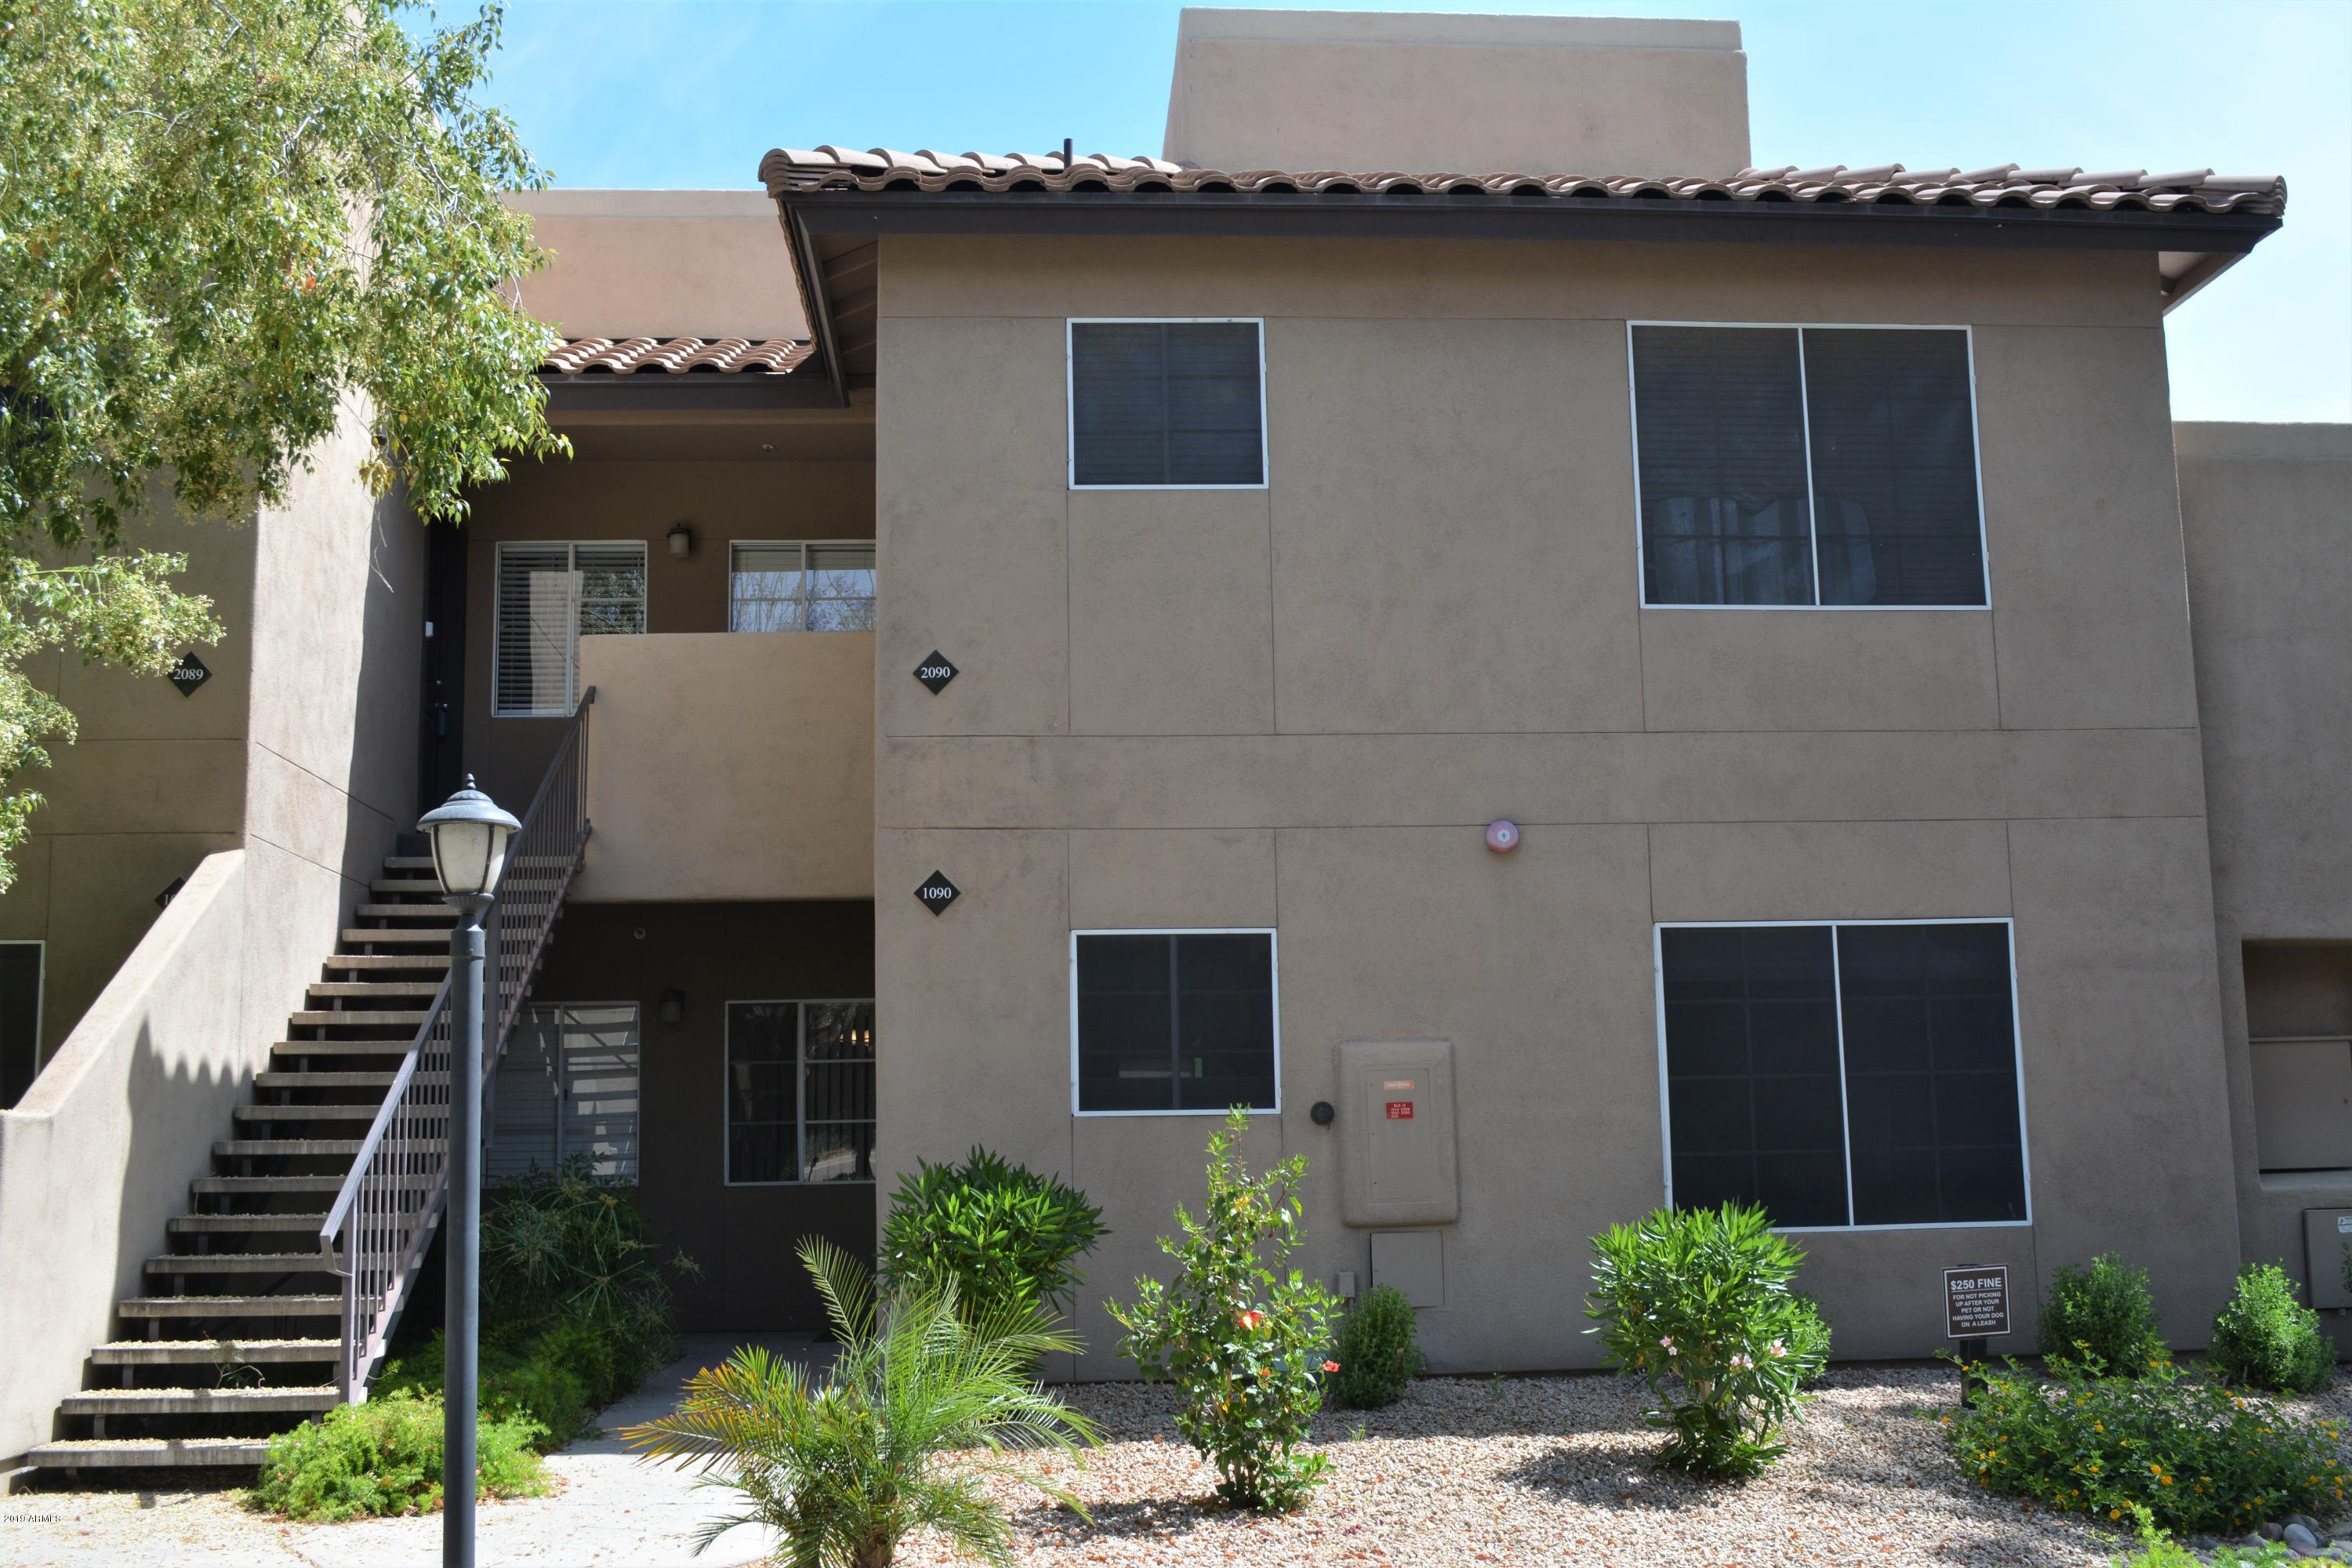 9450 E Becker Lane, Unit 1090, Scottsdale AZ 85260